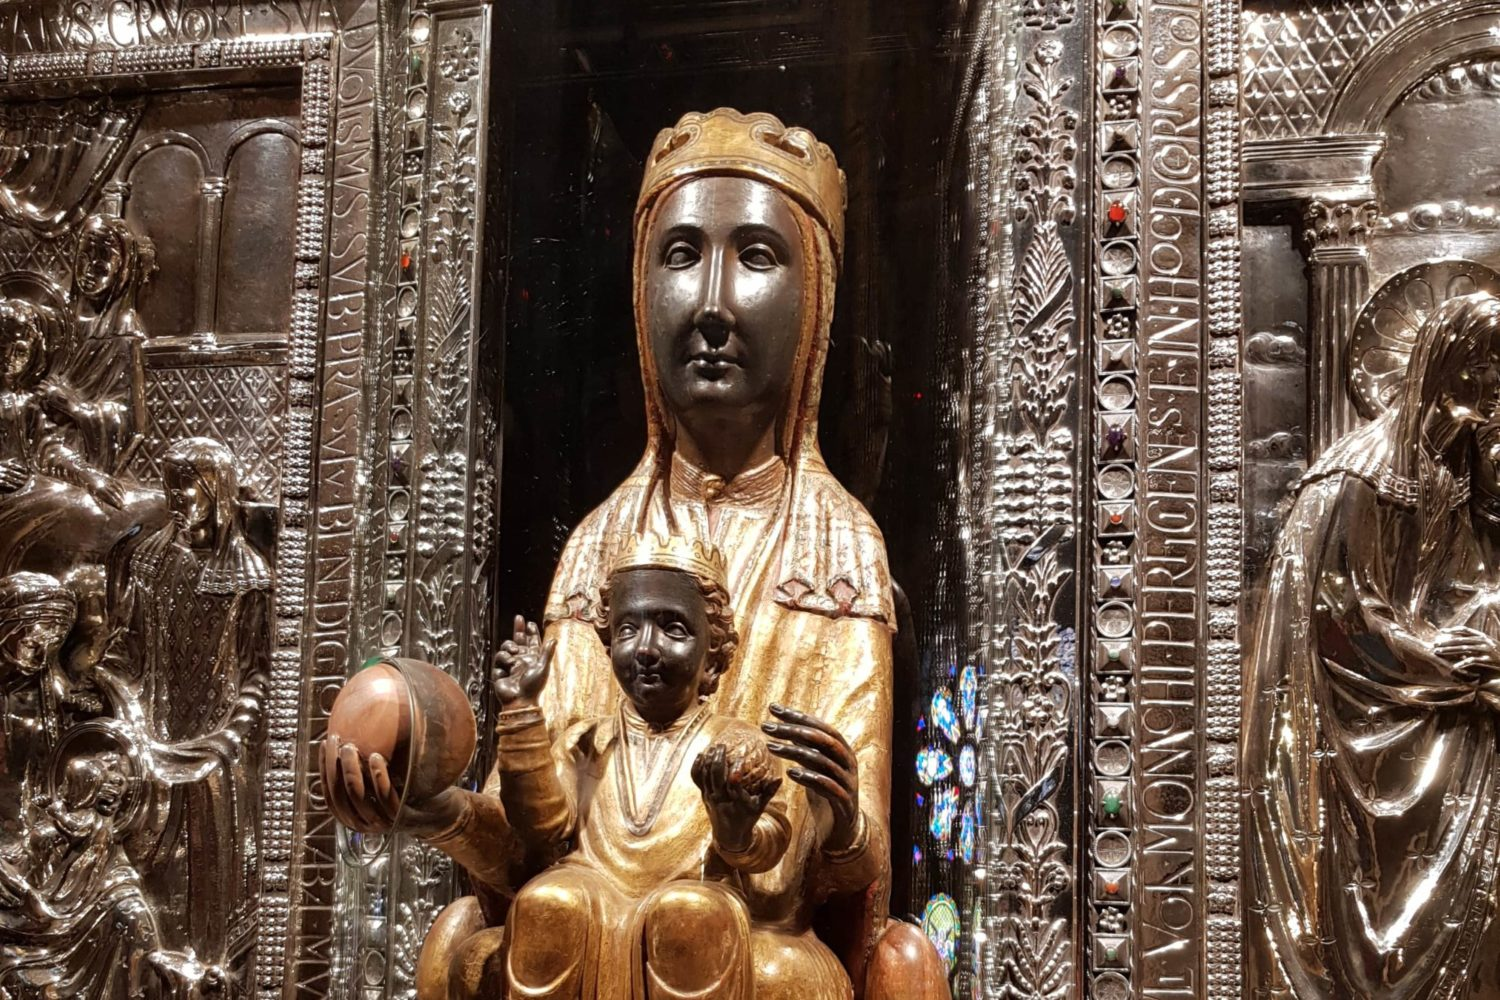 The poly-chrome carving of Saint Mary of Montserrat.